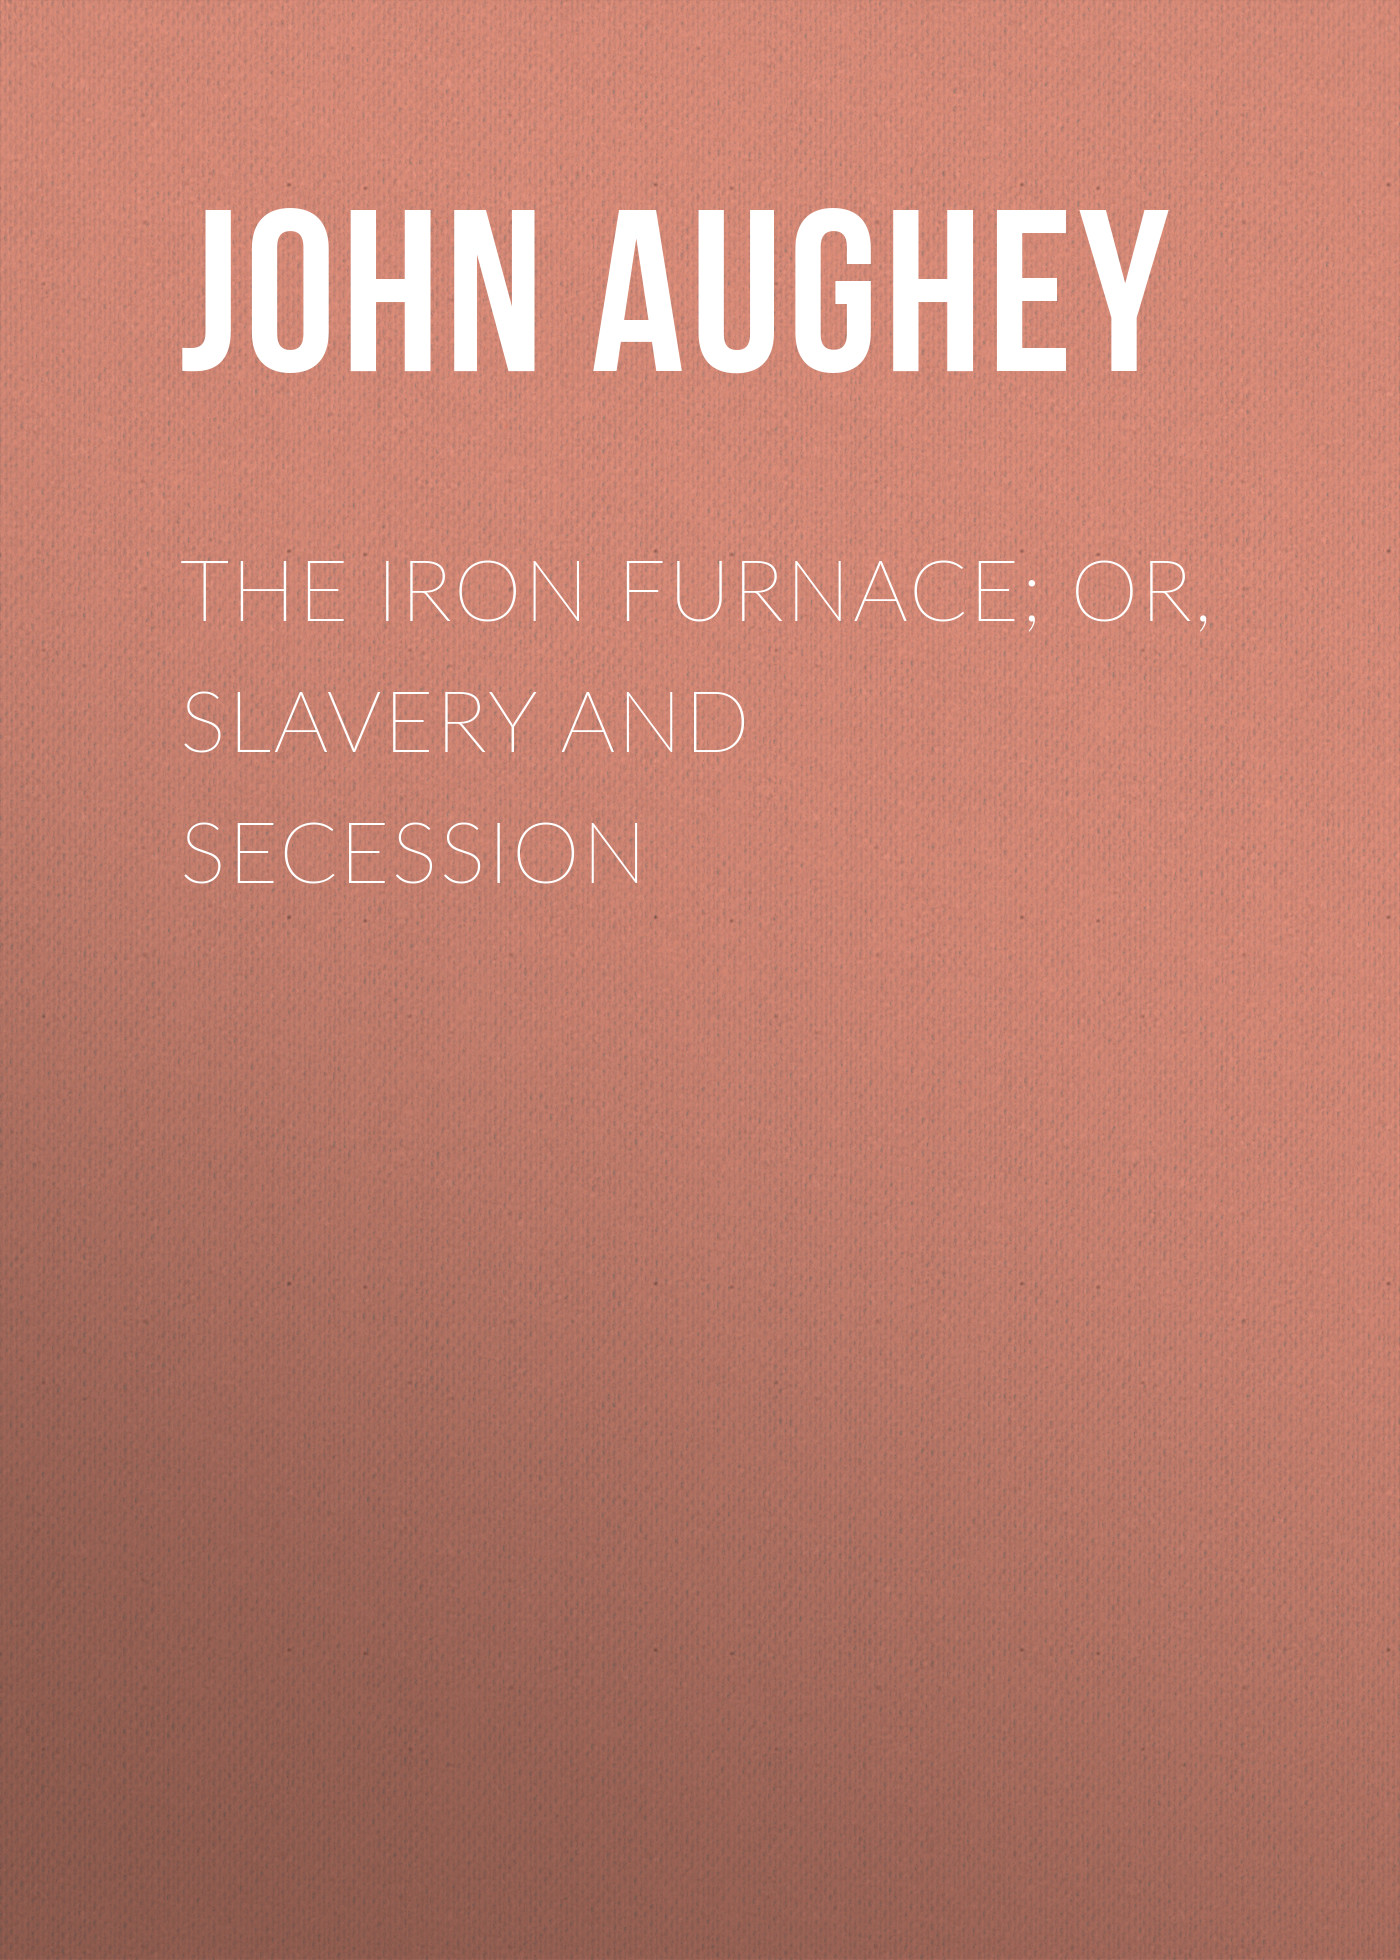 Aughey John Hill The Iron Furnace; or, Slavery and Secession